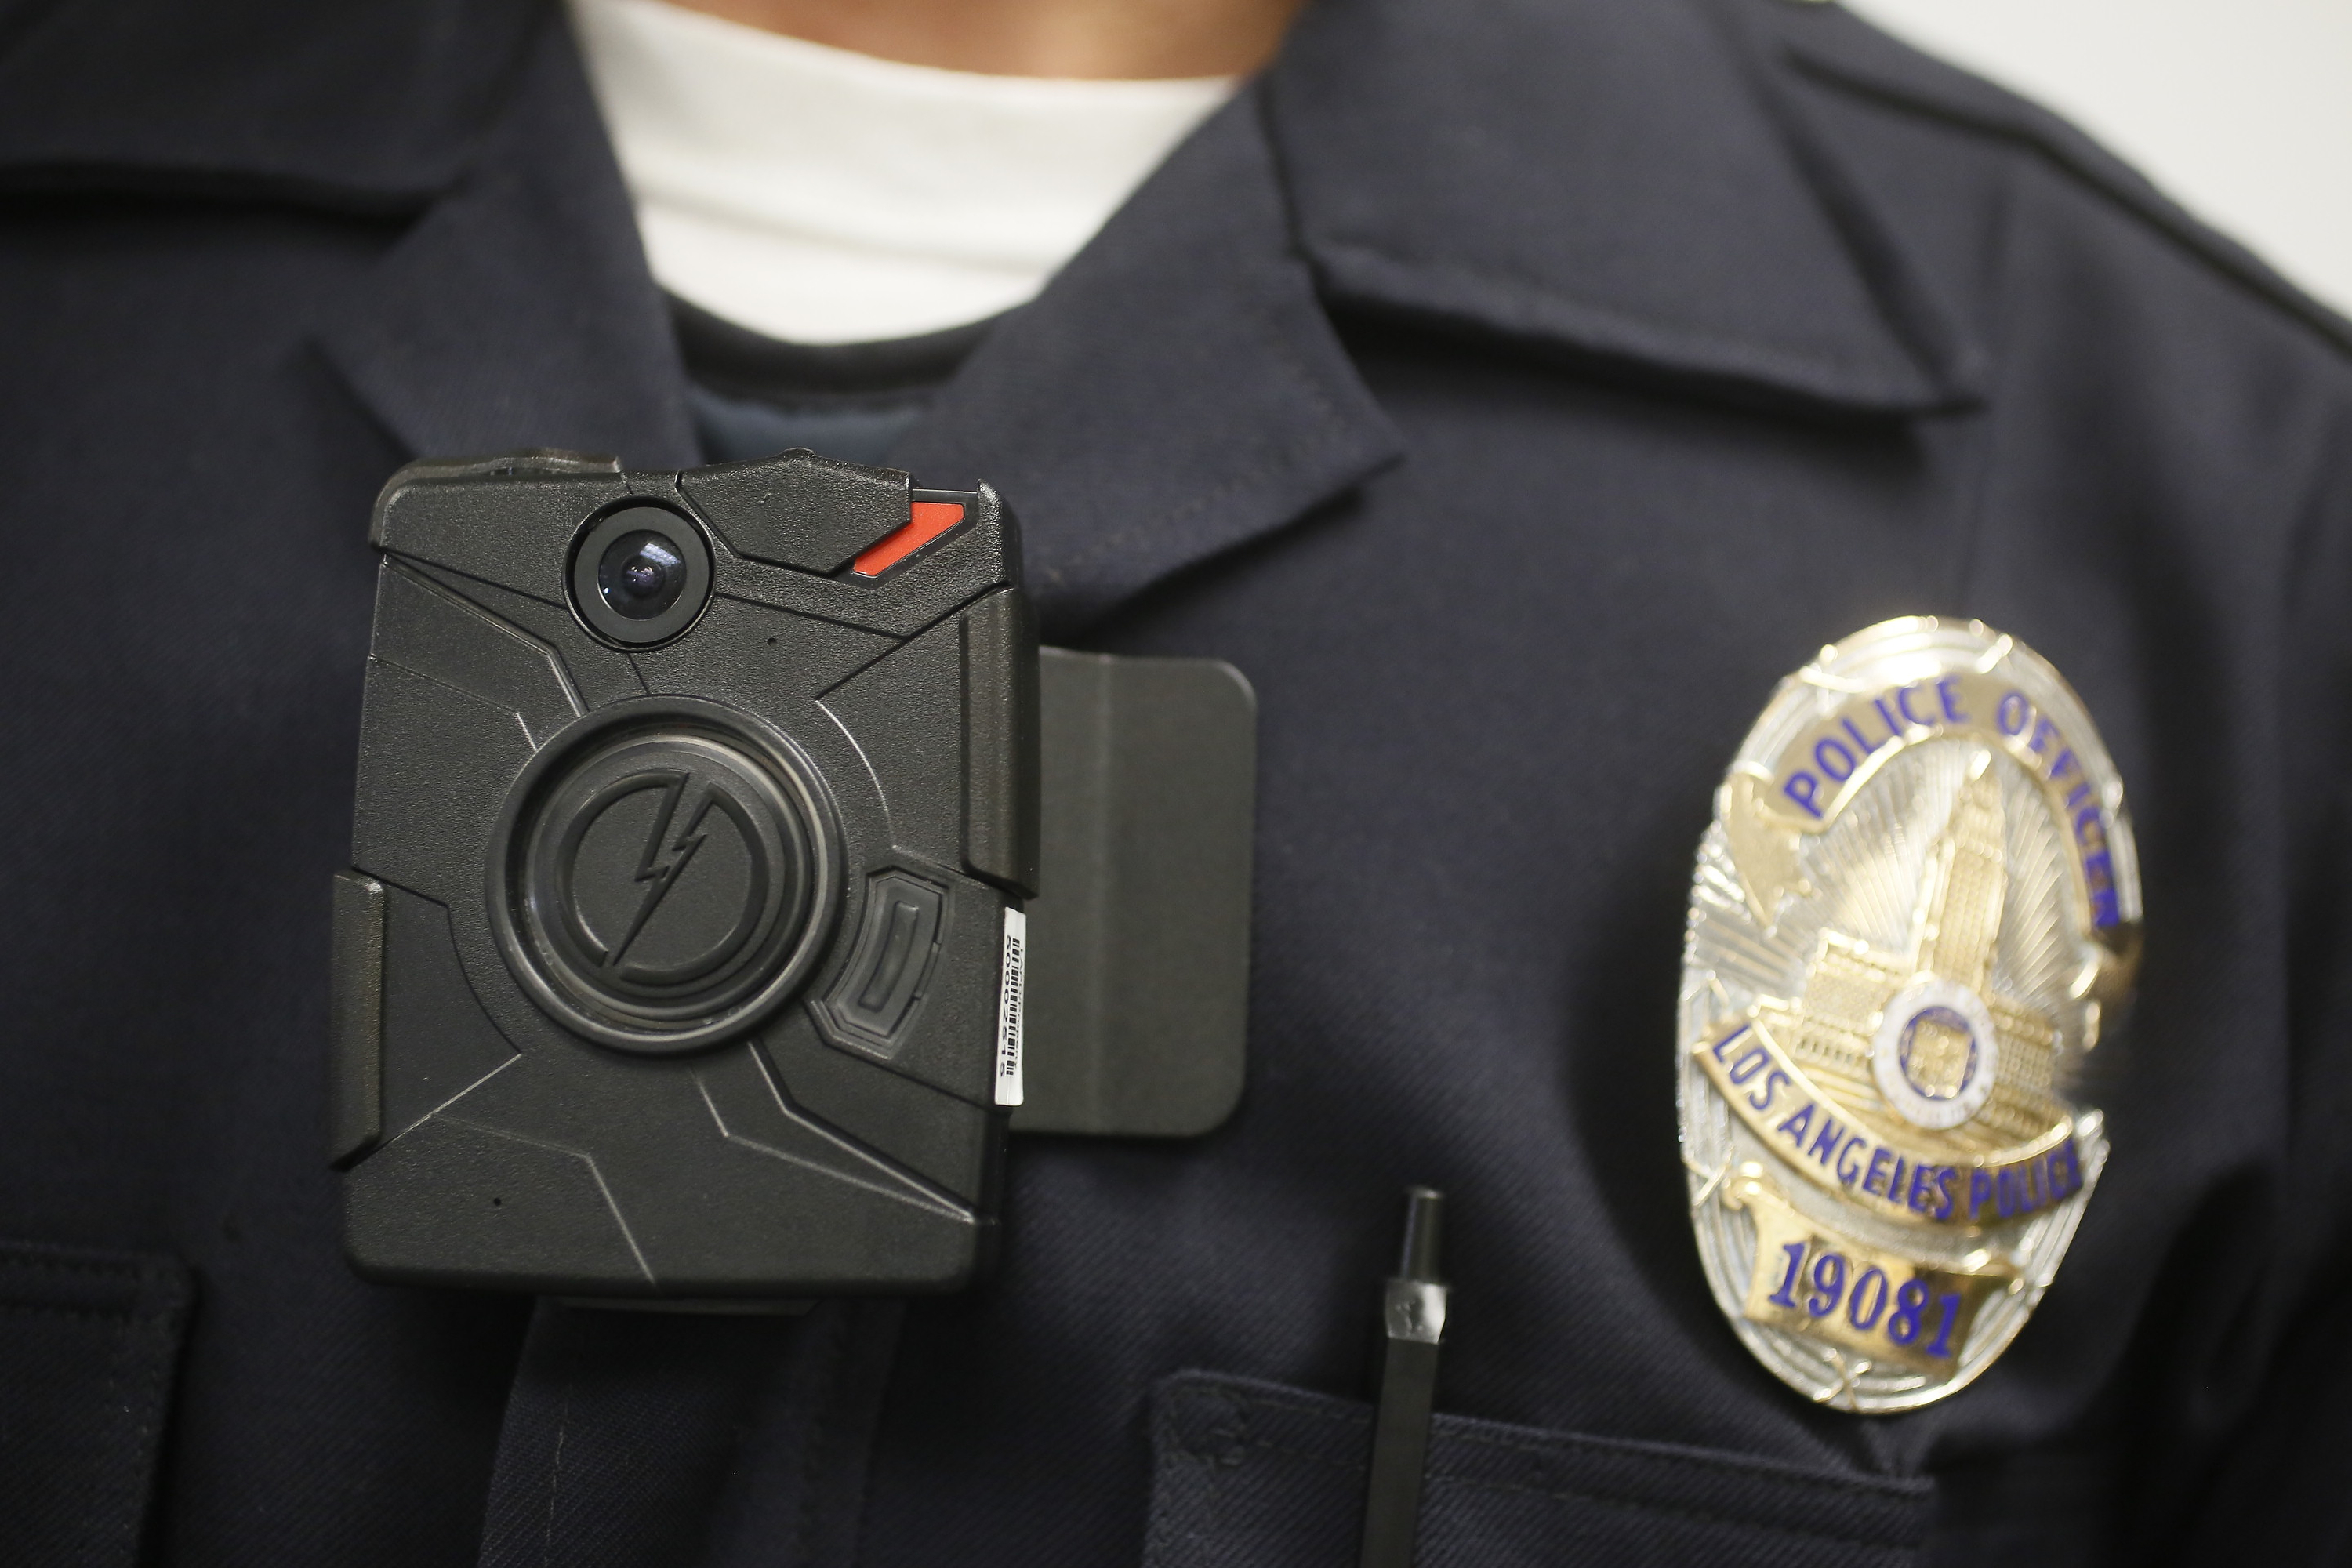 A Los Angeles Police officer wears an on-body camera Jan. 15, 2014. Los Angeles Mayor Eric Garcetti plans to equip every LAPD officer with a camera.